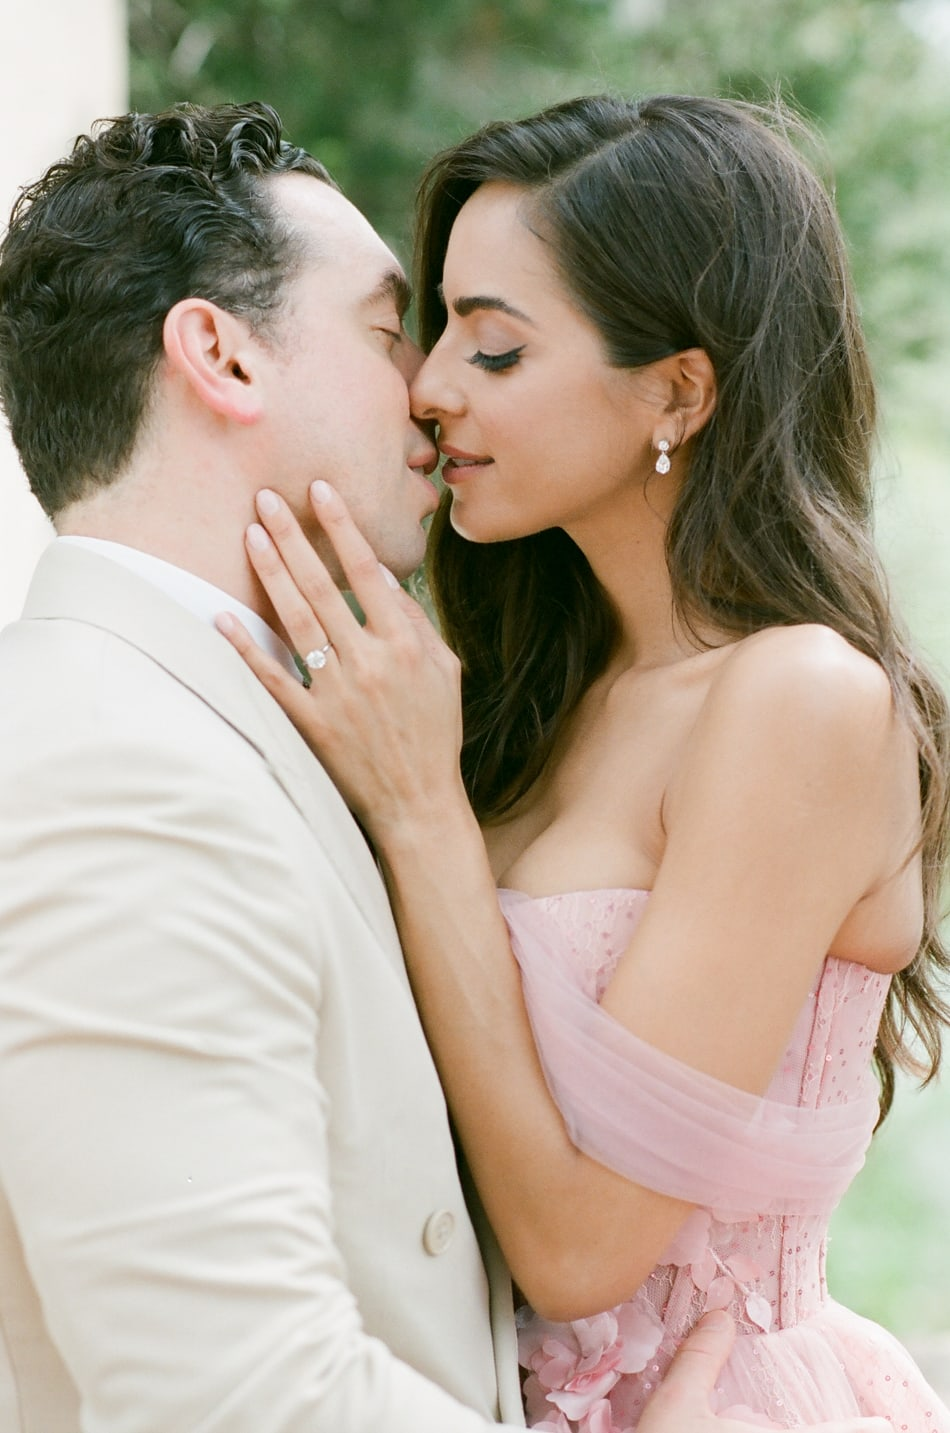 Bride and groom kissing each other